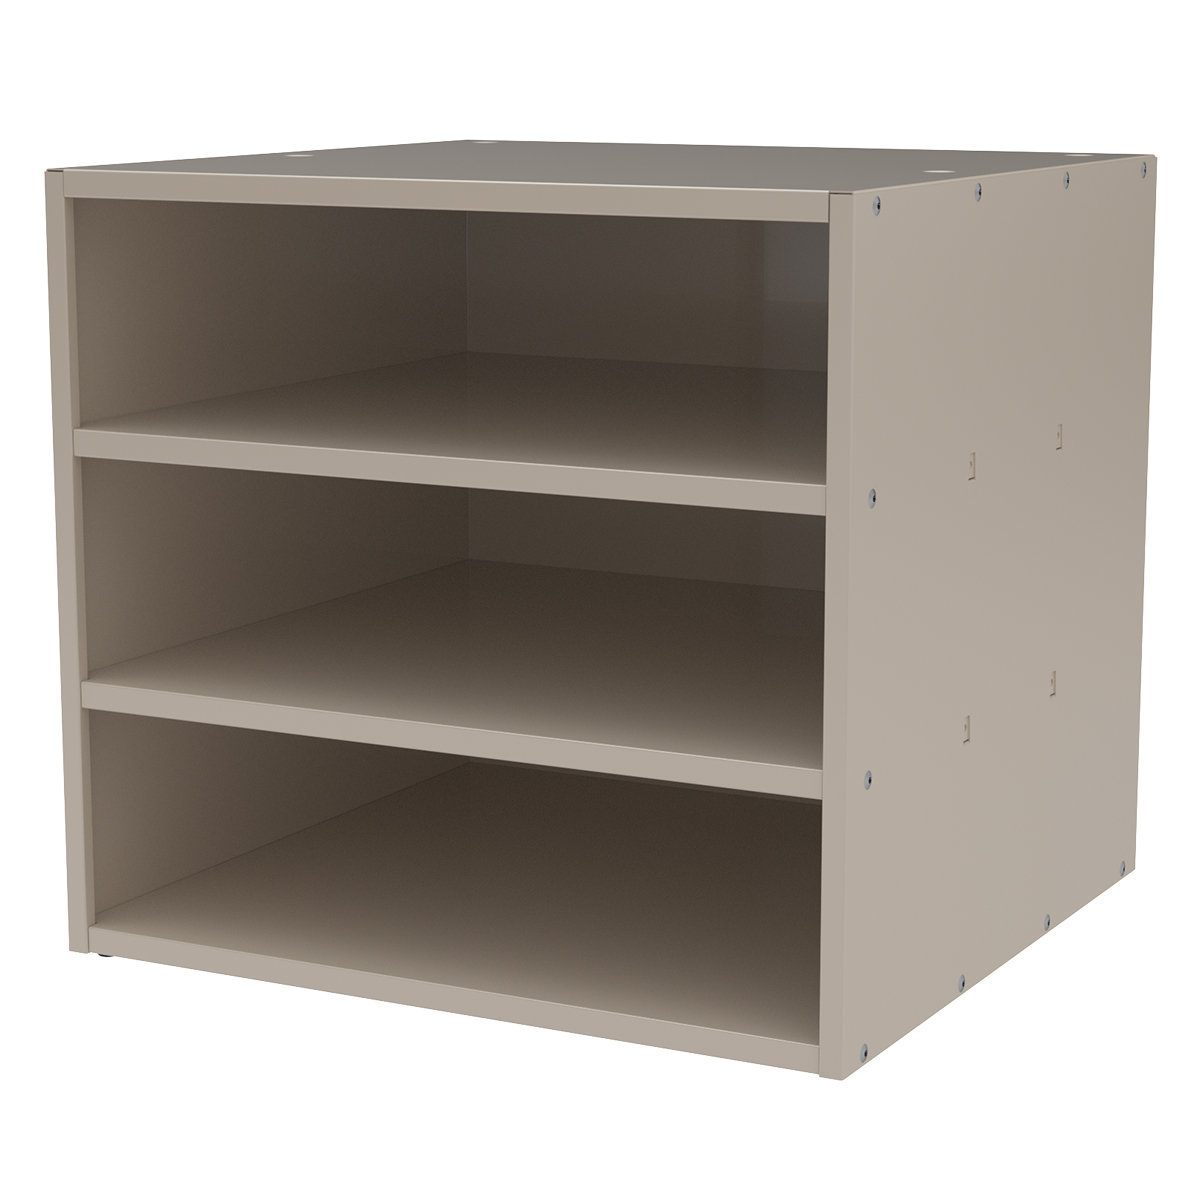 Item DISCONTINUED by Manufacturer.  Modular Cabinet, 18x17x16, no Drawers, Putty (AD1817P).  This item sold in carton quantities of 1.